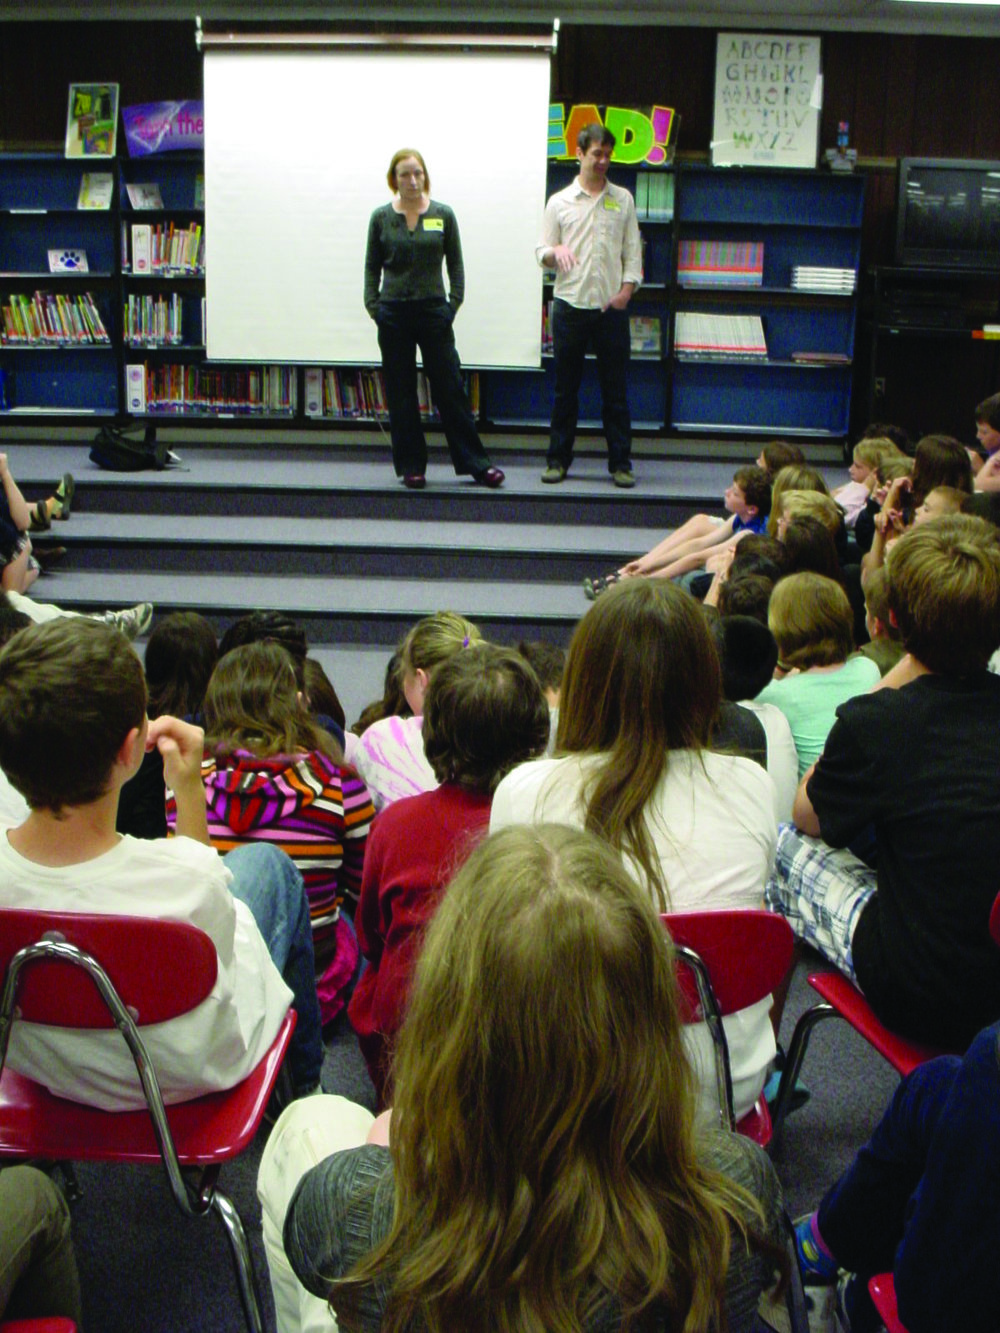 Q and A discussion with filmmakers post education guide module screening with a 5th-grade classroom in Arden, NC 2014.